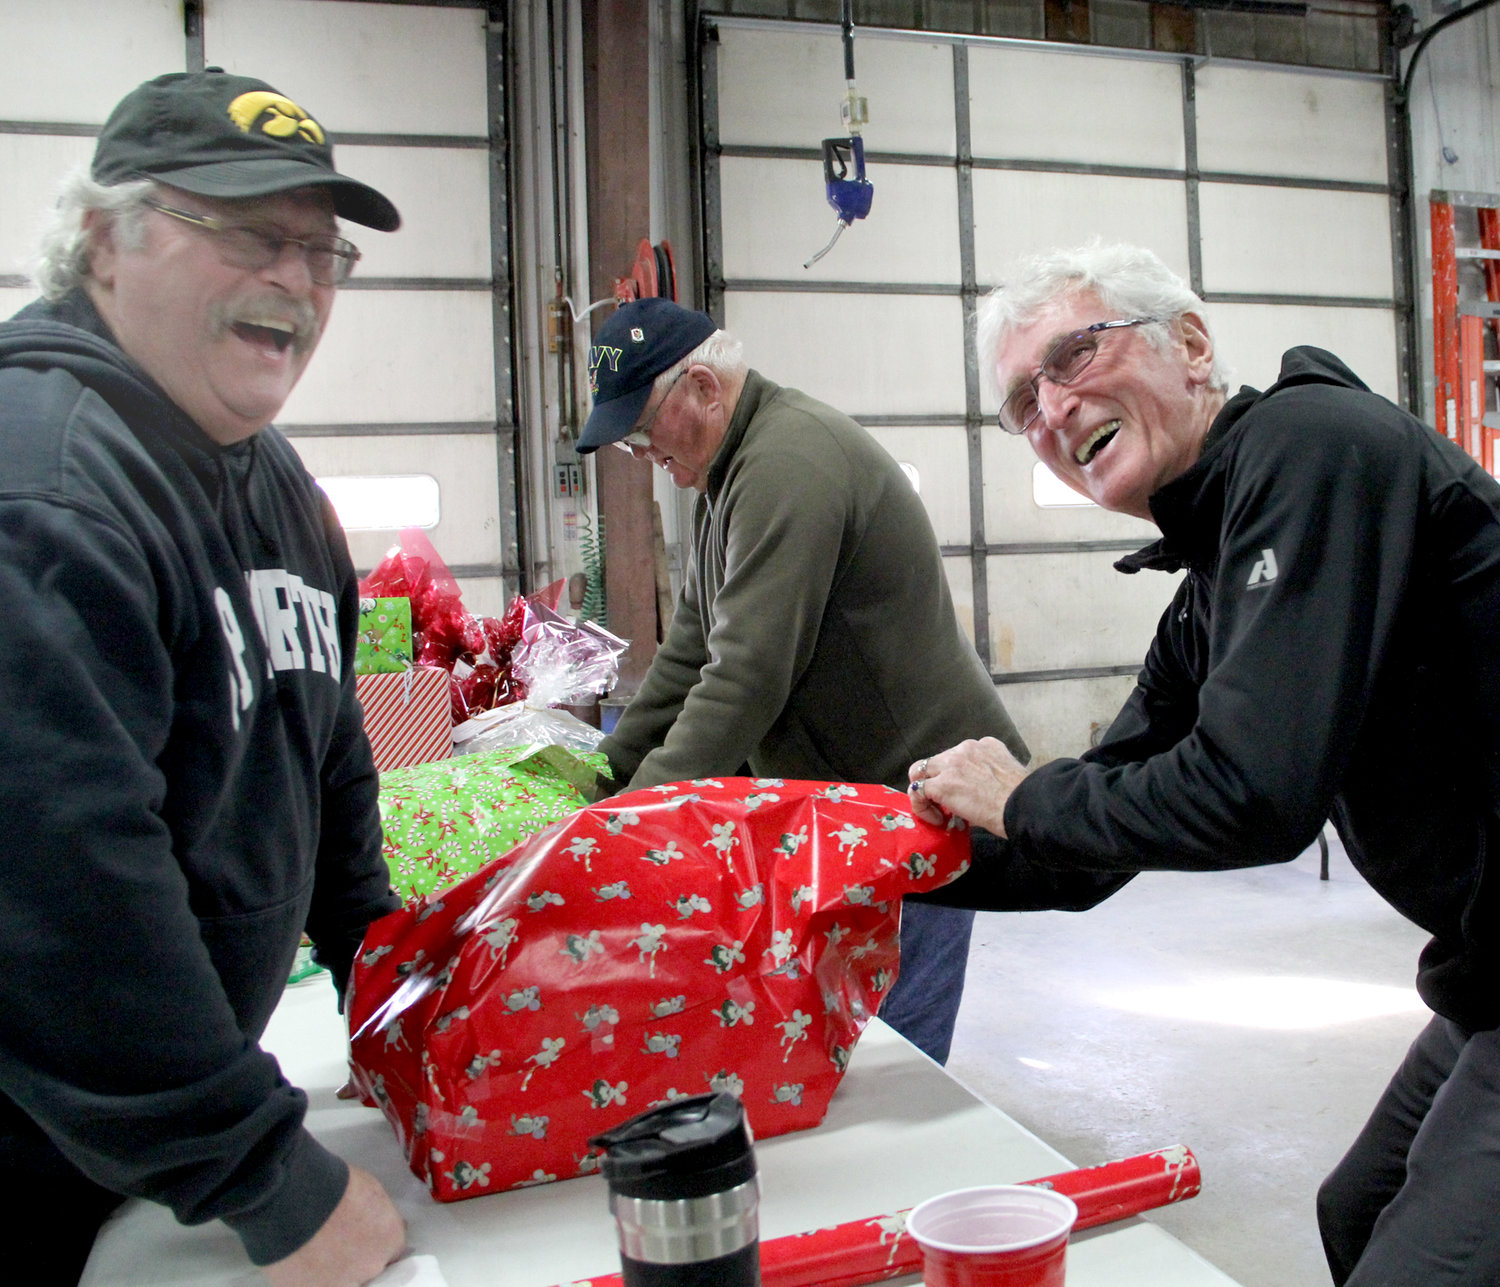 Bob Pfiffner, Craig Ripple and John Thier add another gift.